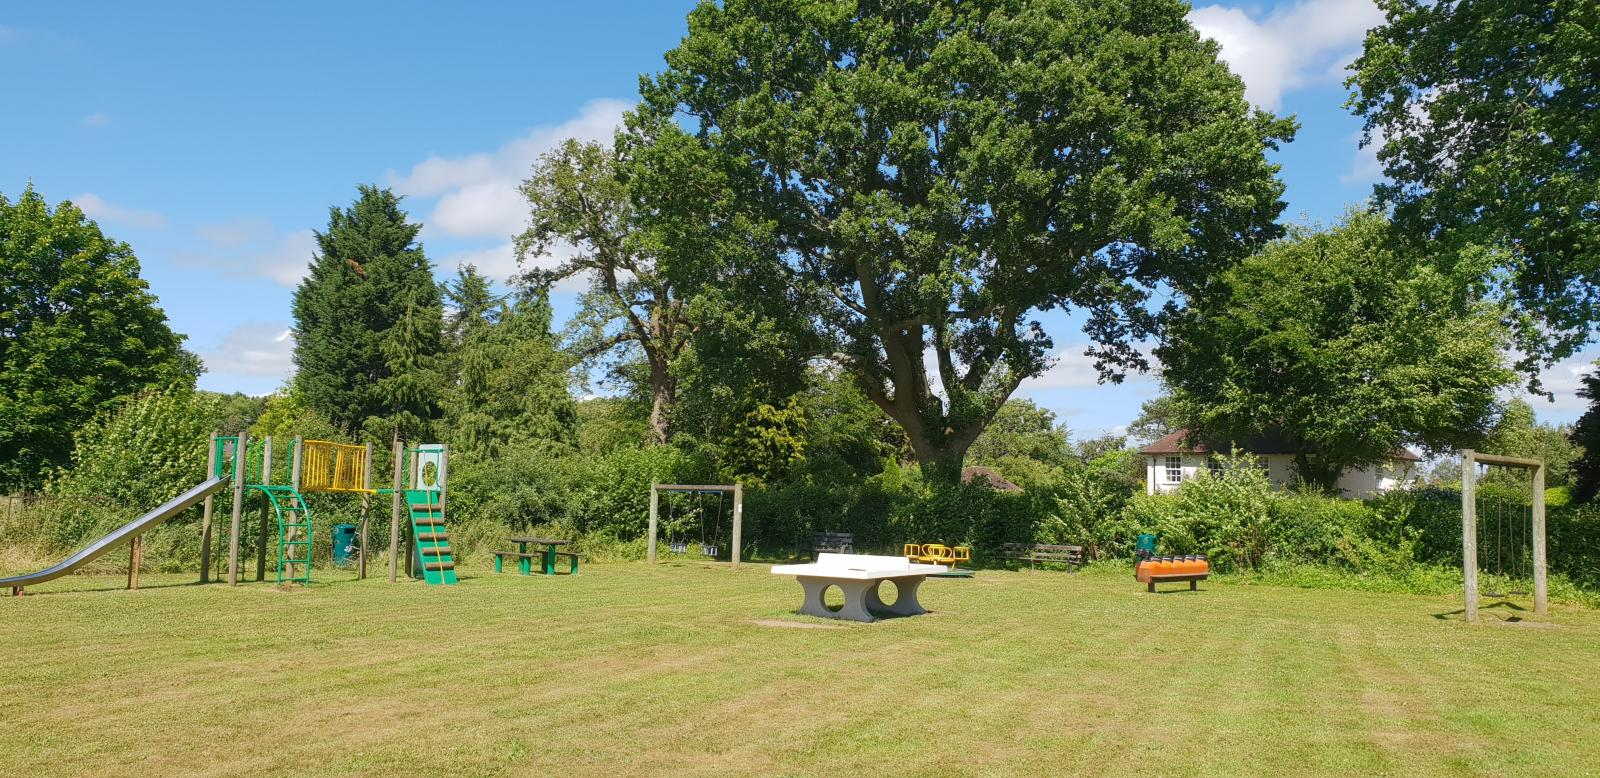 Whitchurch Hill Recreation Ground Play Area